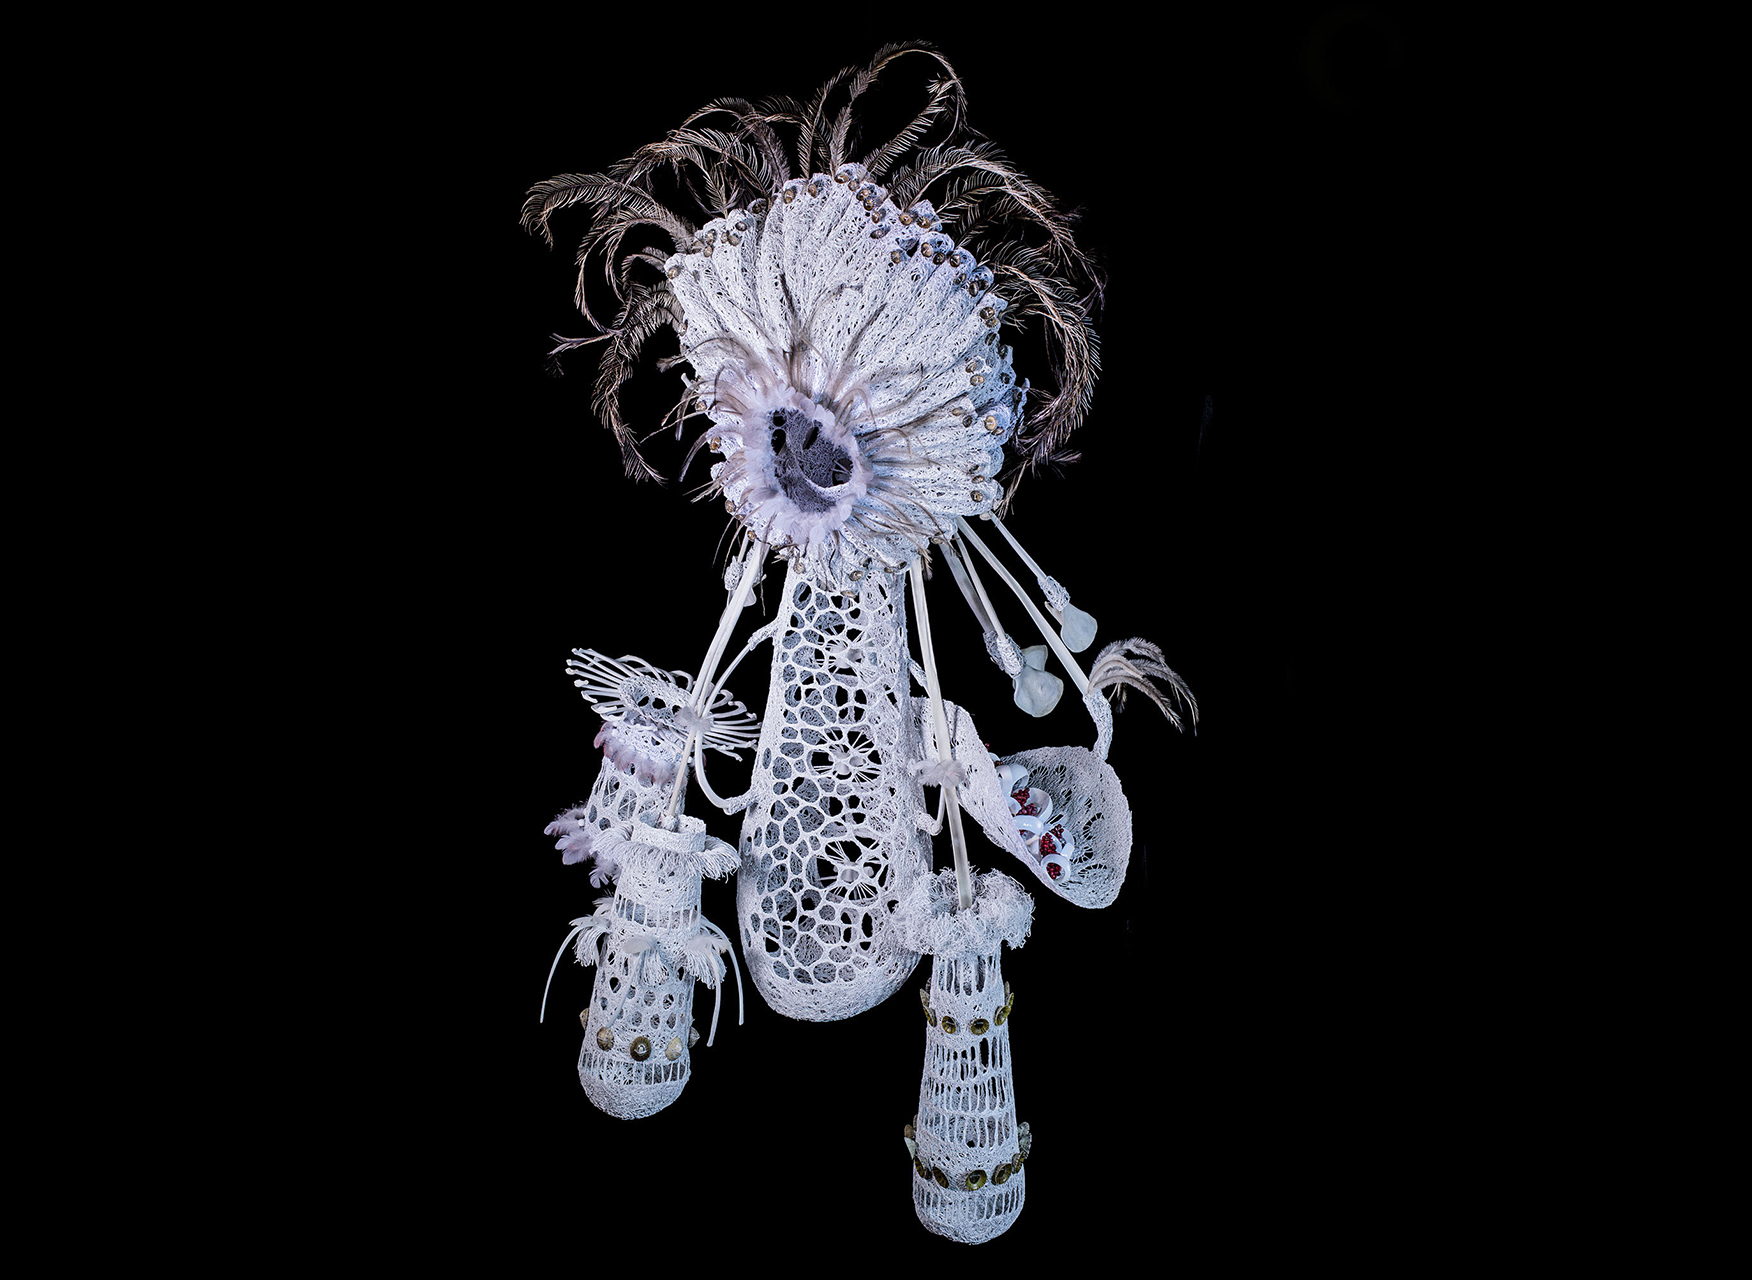 Jenny Crompton, Min Murrup <br /> painted copper wire, emu feathers, shells, roo bones, beads and balsa wood, 120 x 65 x 65 cm